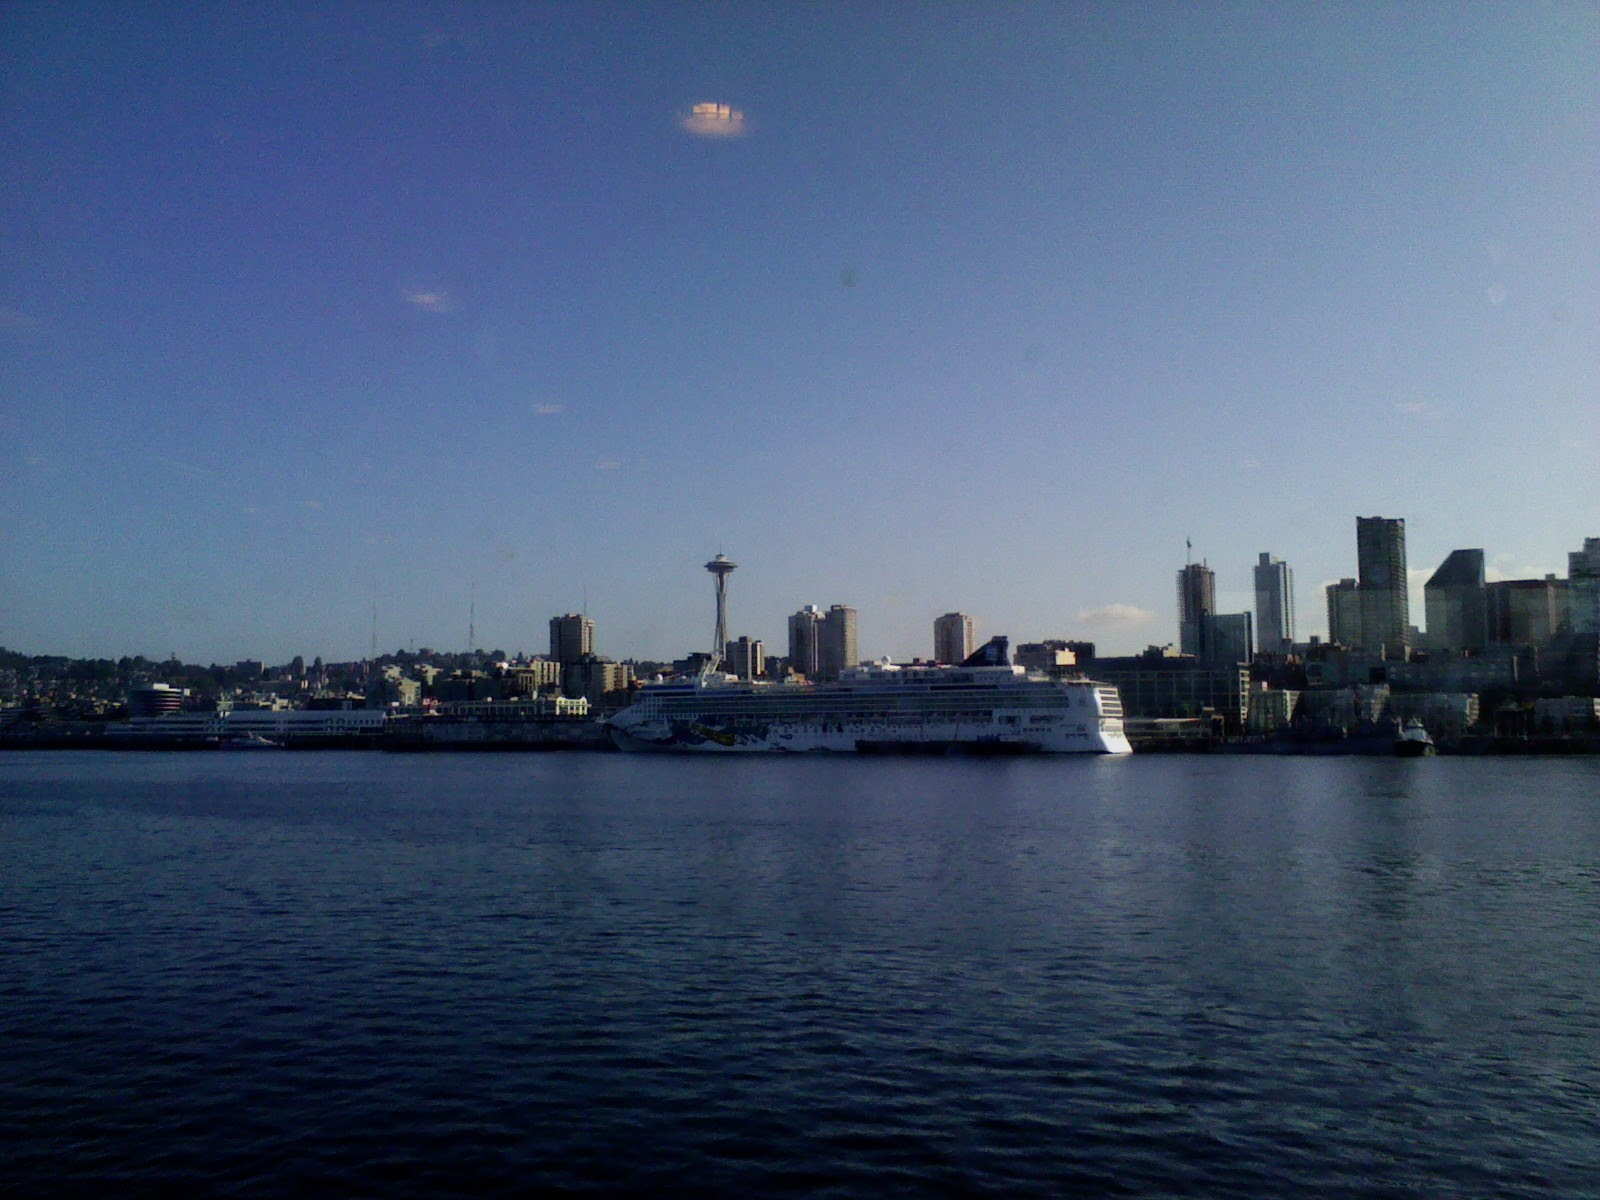 ...so here's a closer photo with a giant cruise ship in the way.